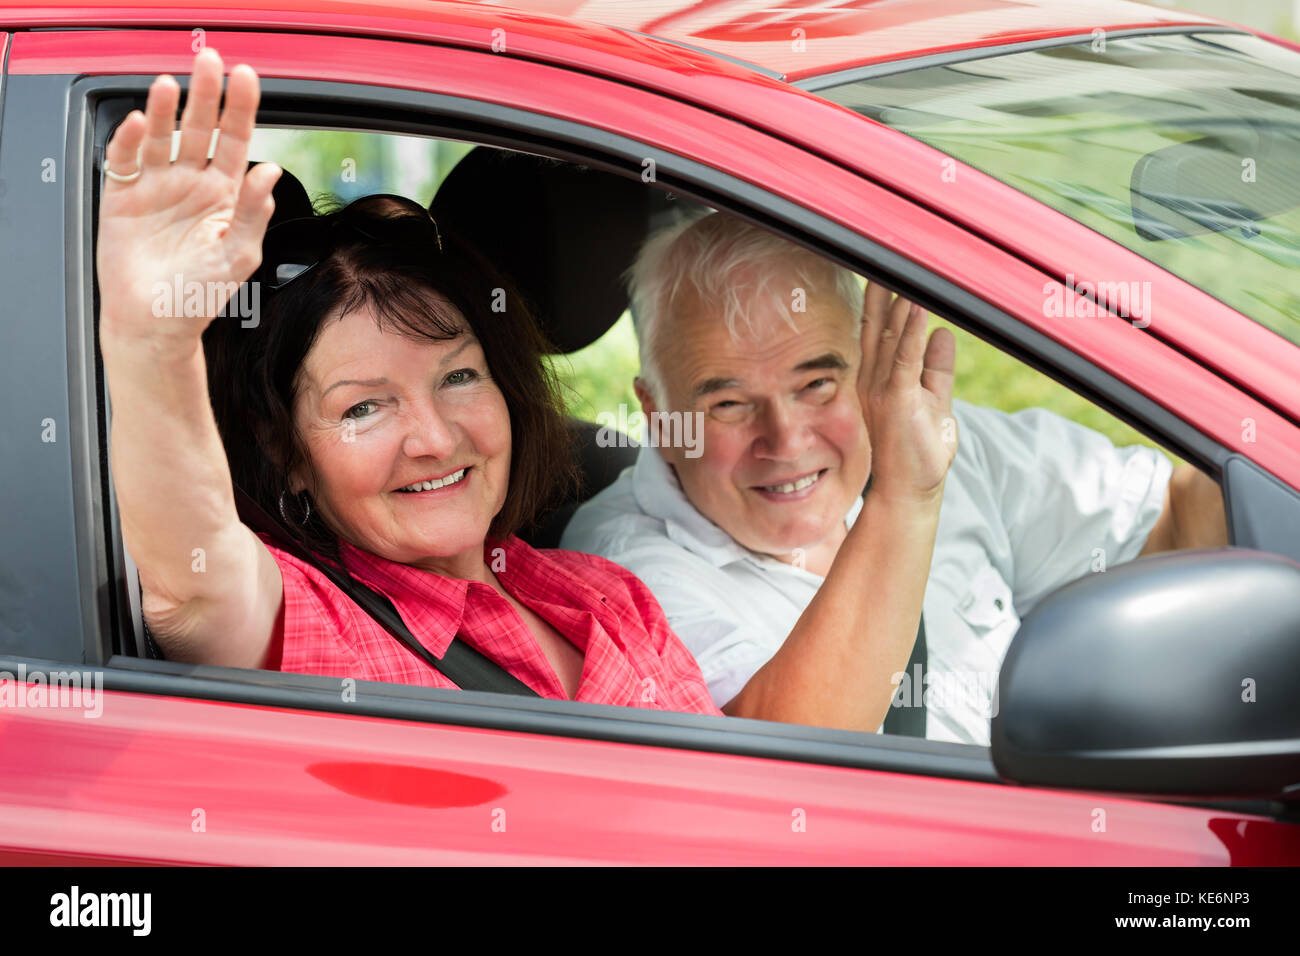 waving goodbye car stock photos waving goodbye car stock images alamy. Black Bedroom Furniture Sets. Home Design Ideas